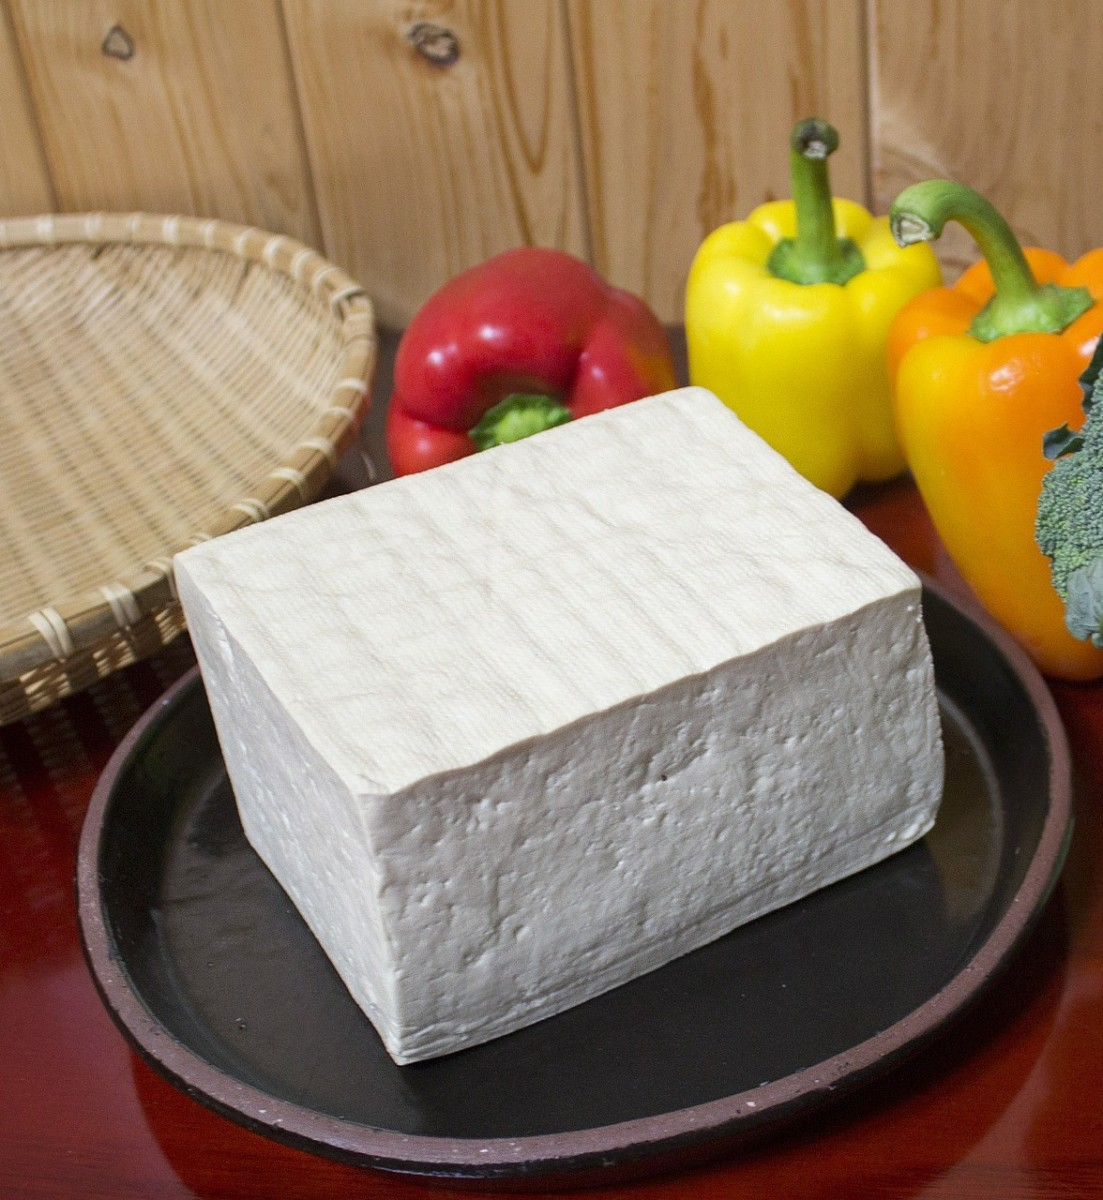 Depending on your current soy stance, this block of tofu might inspire oohs and ahs or icks and ews. But I'm convinced there's a tofu dish for everyone.